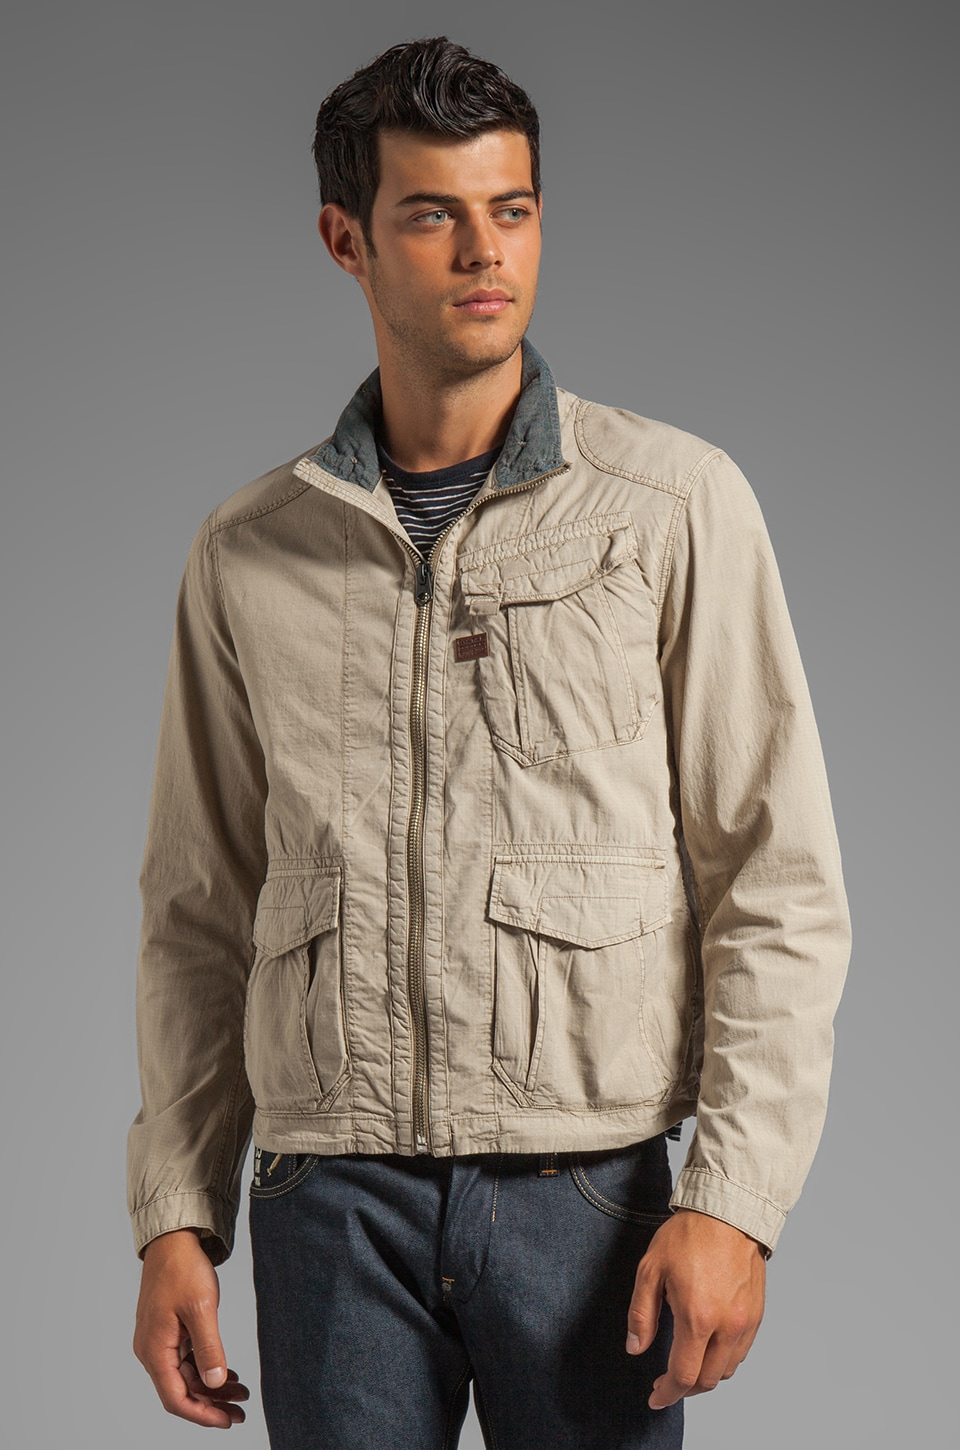 G-Star Nelson Overshirt Jacket in Khaki